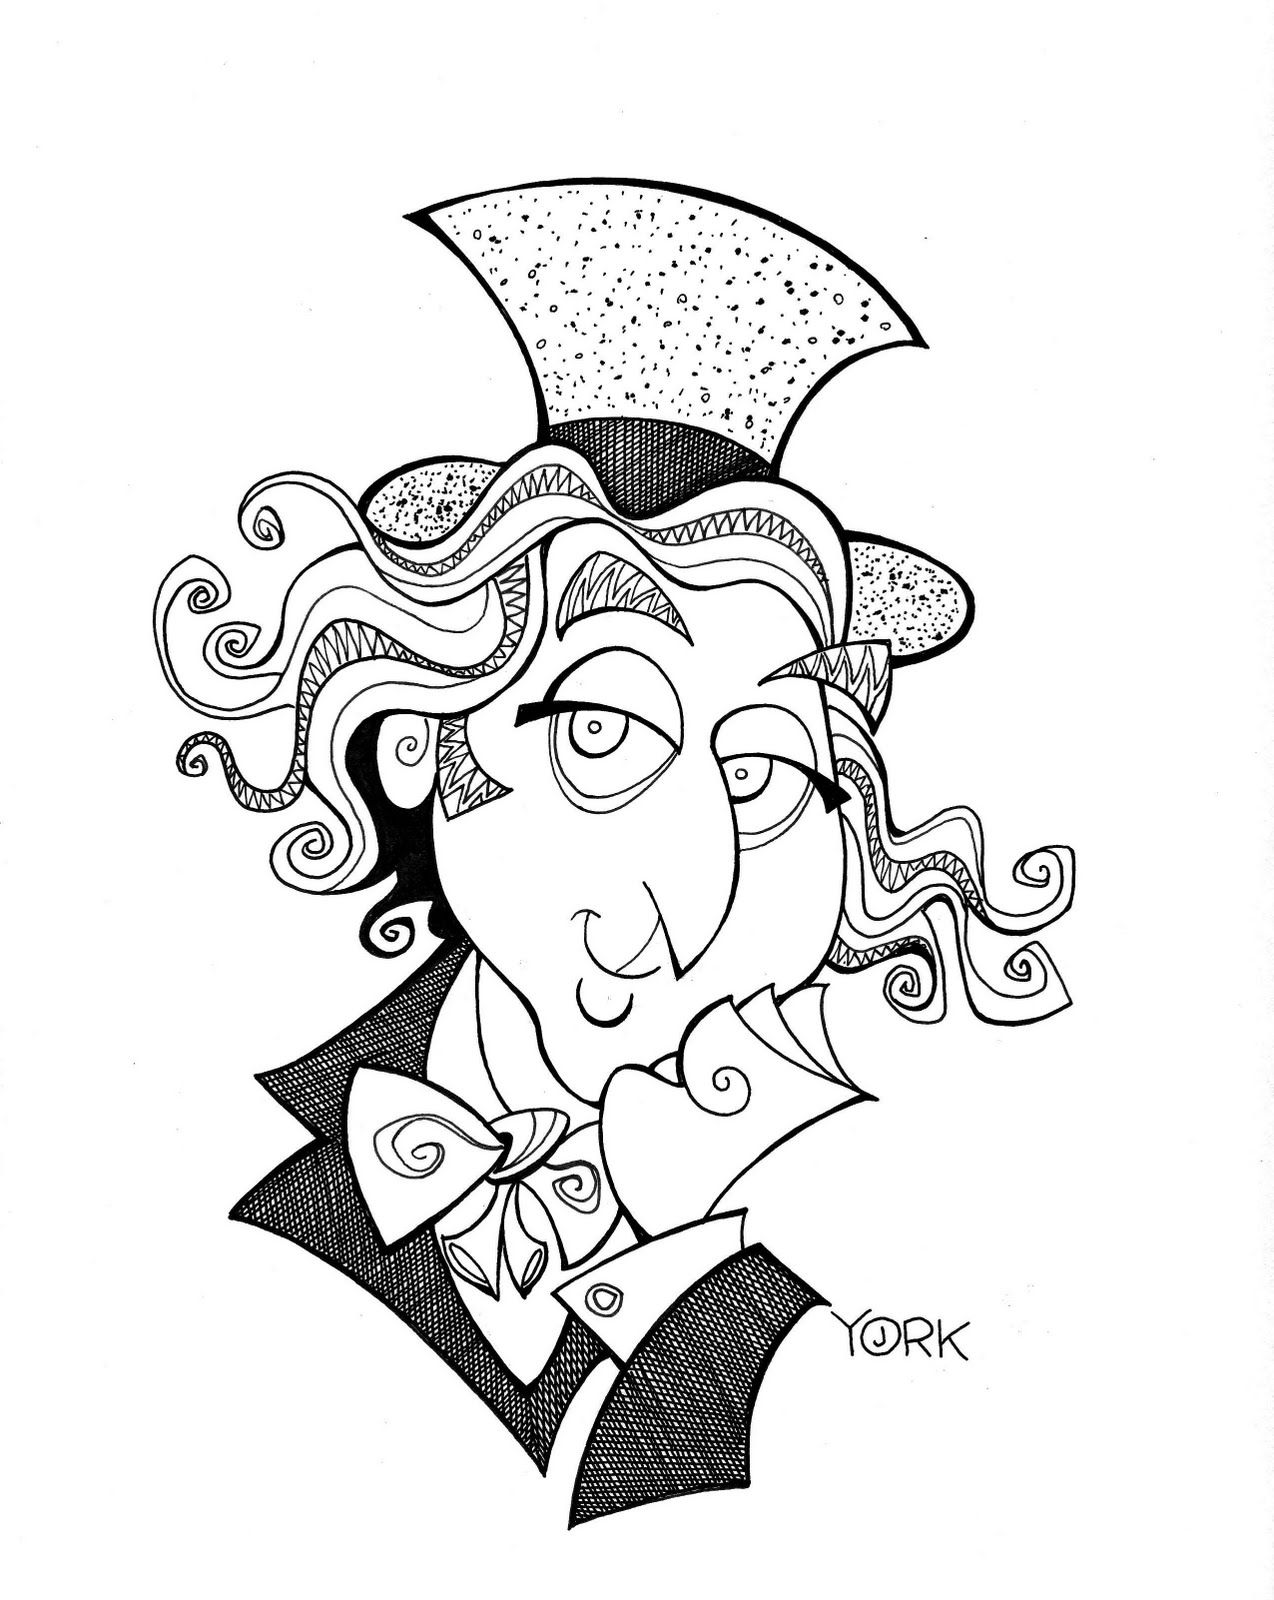 1274x1600 Star Trek Caricature Original Caricature Of Gene Wilder As Willy